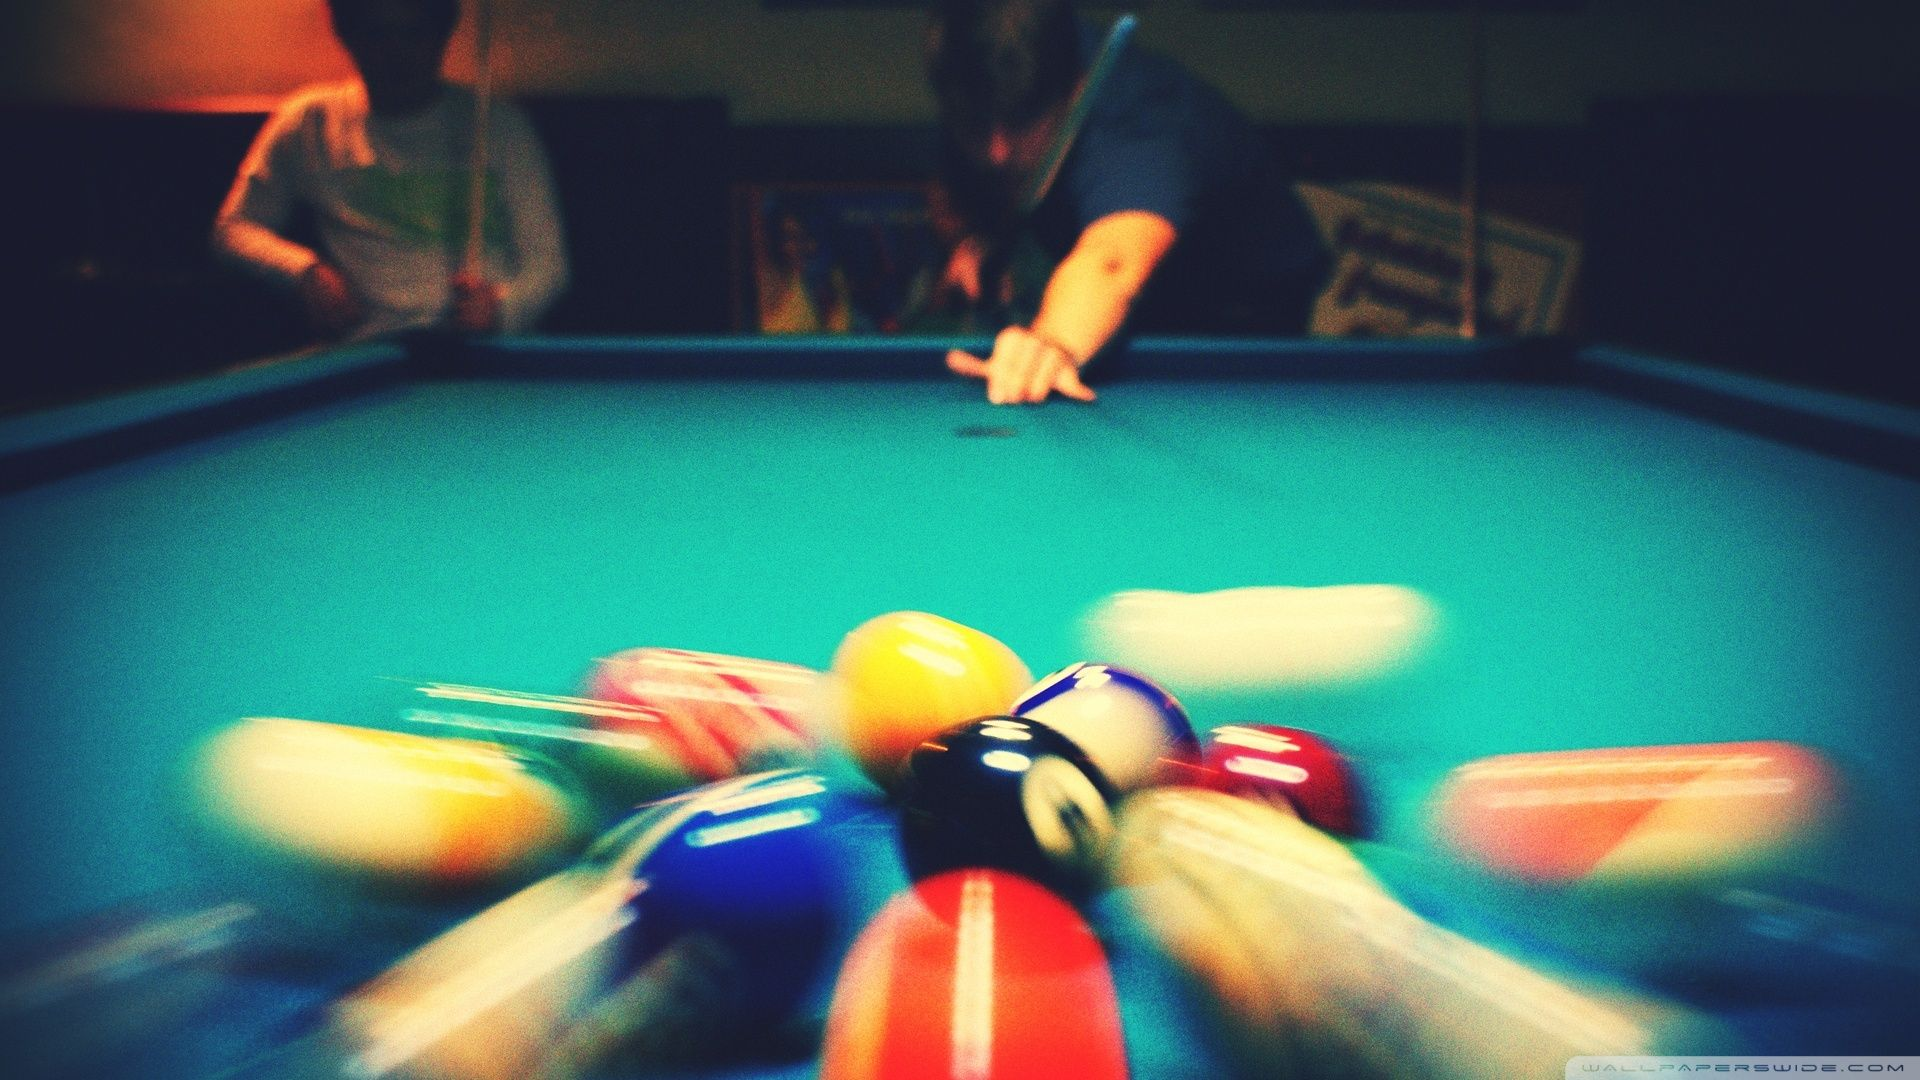 Sports Wallpaper Billiard Iphone Wallpapers Hd Resolution: Billiard Pool – Sports HD Wallpaper